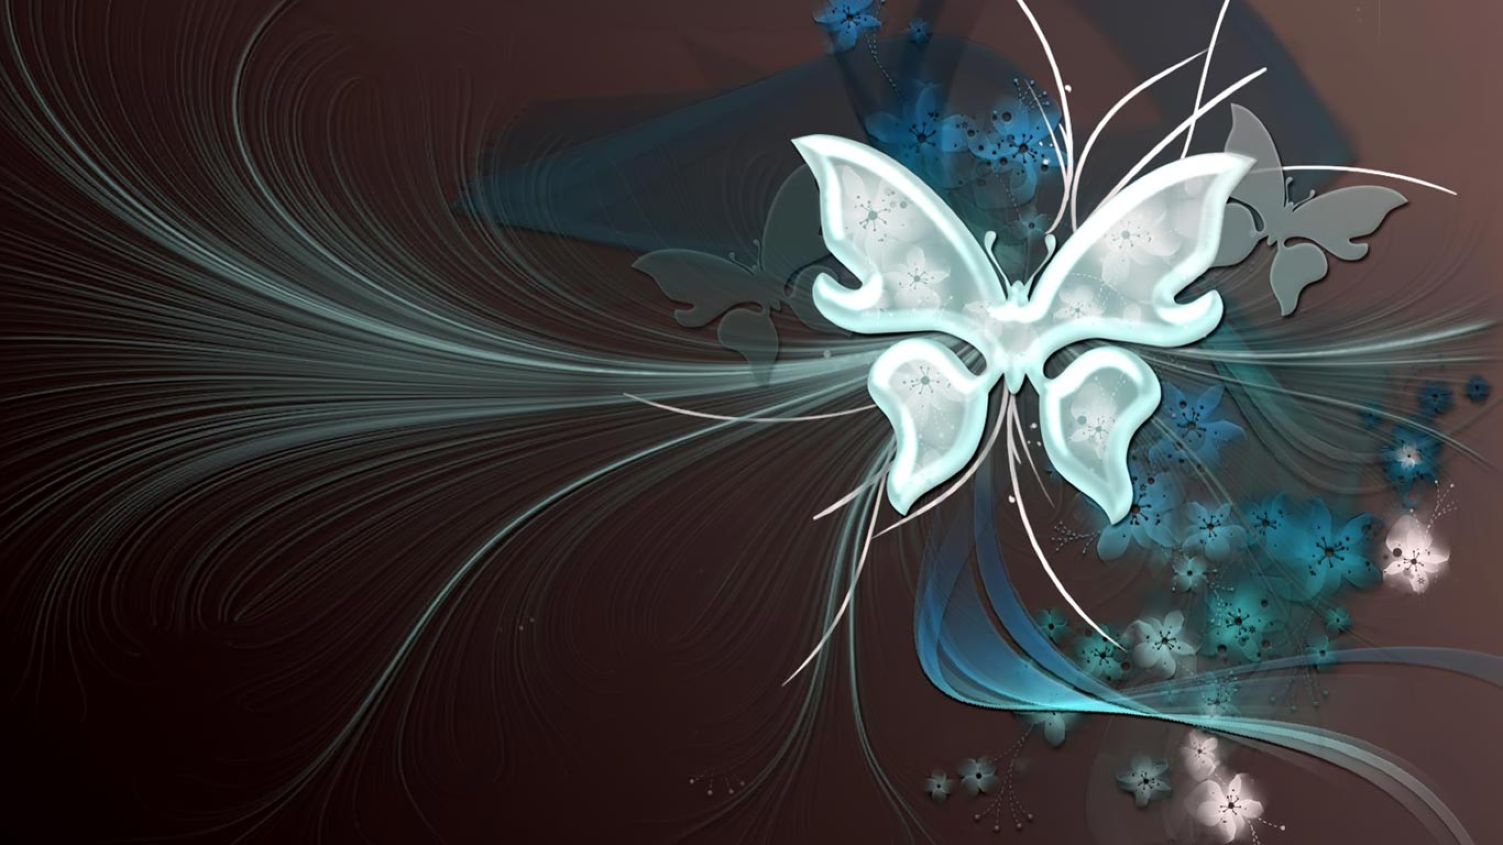 3D Butterfly HD for Laptop 1366x768 Wallpaper  Desktop HD Wallpaper     3D Butterfly HD for Laptop 1366    768 Wallpaper